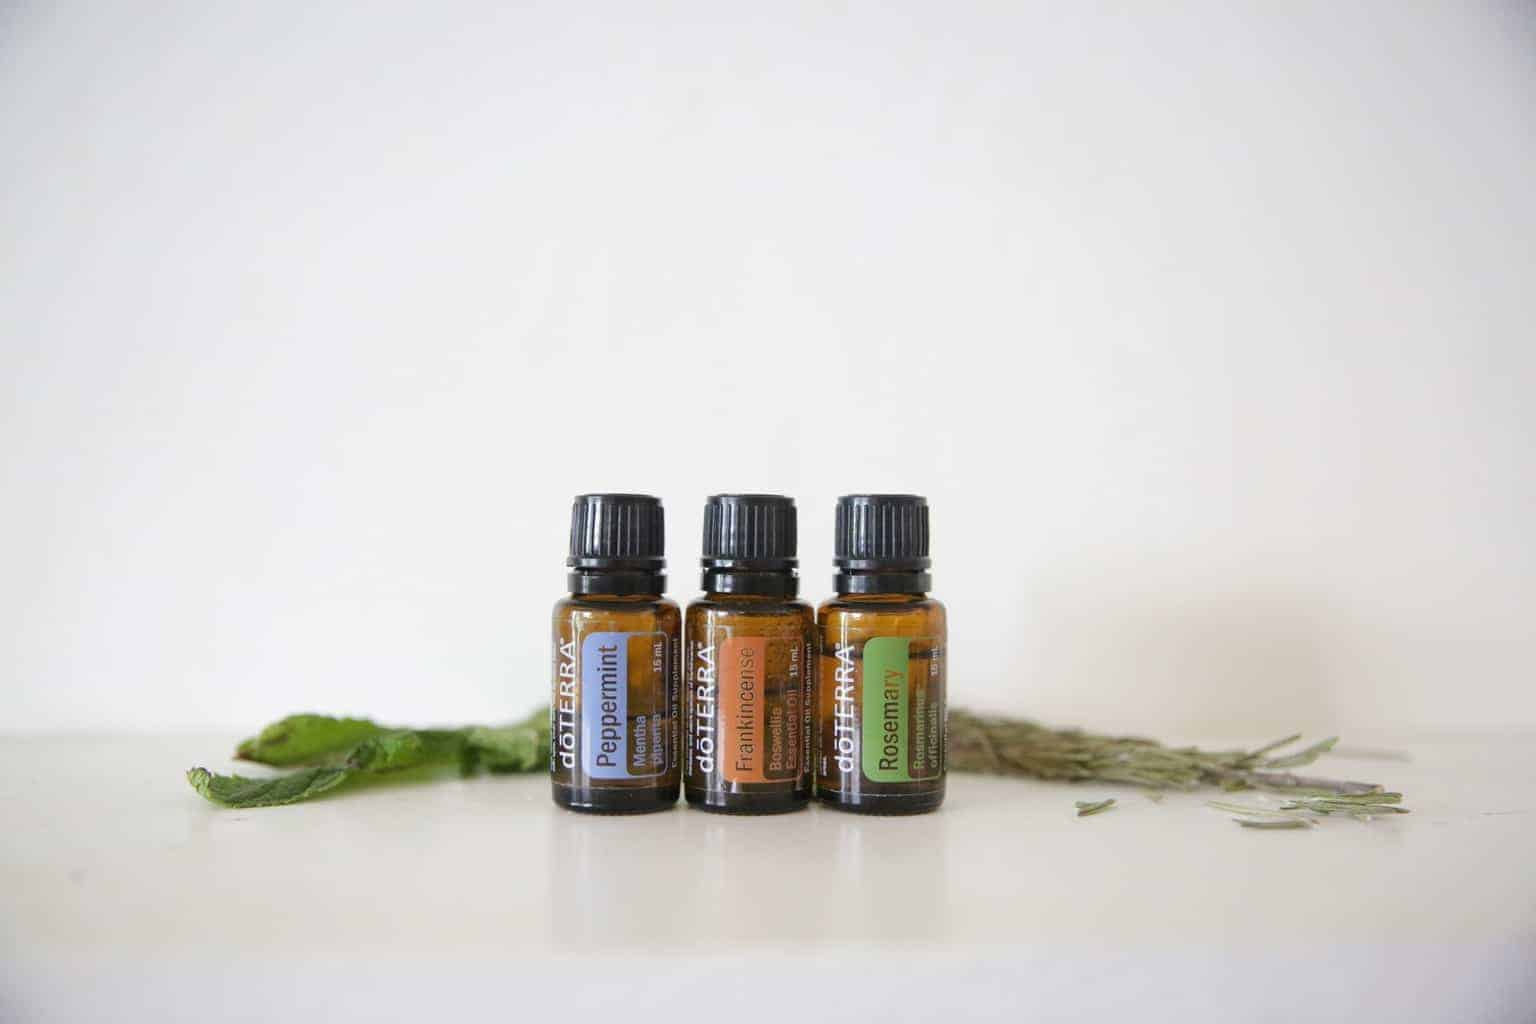 essential oil bottles with rosemary leaves